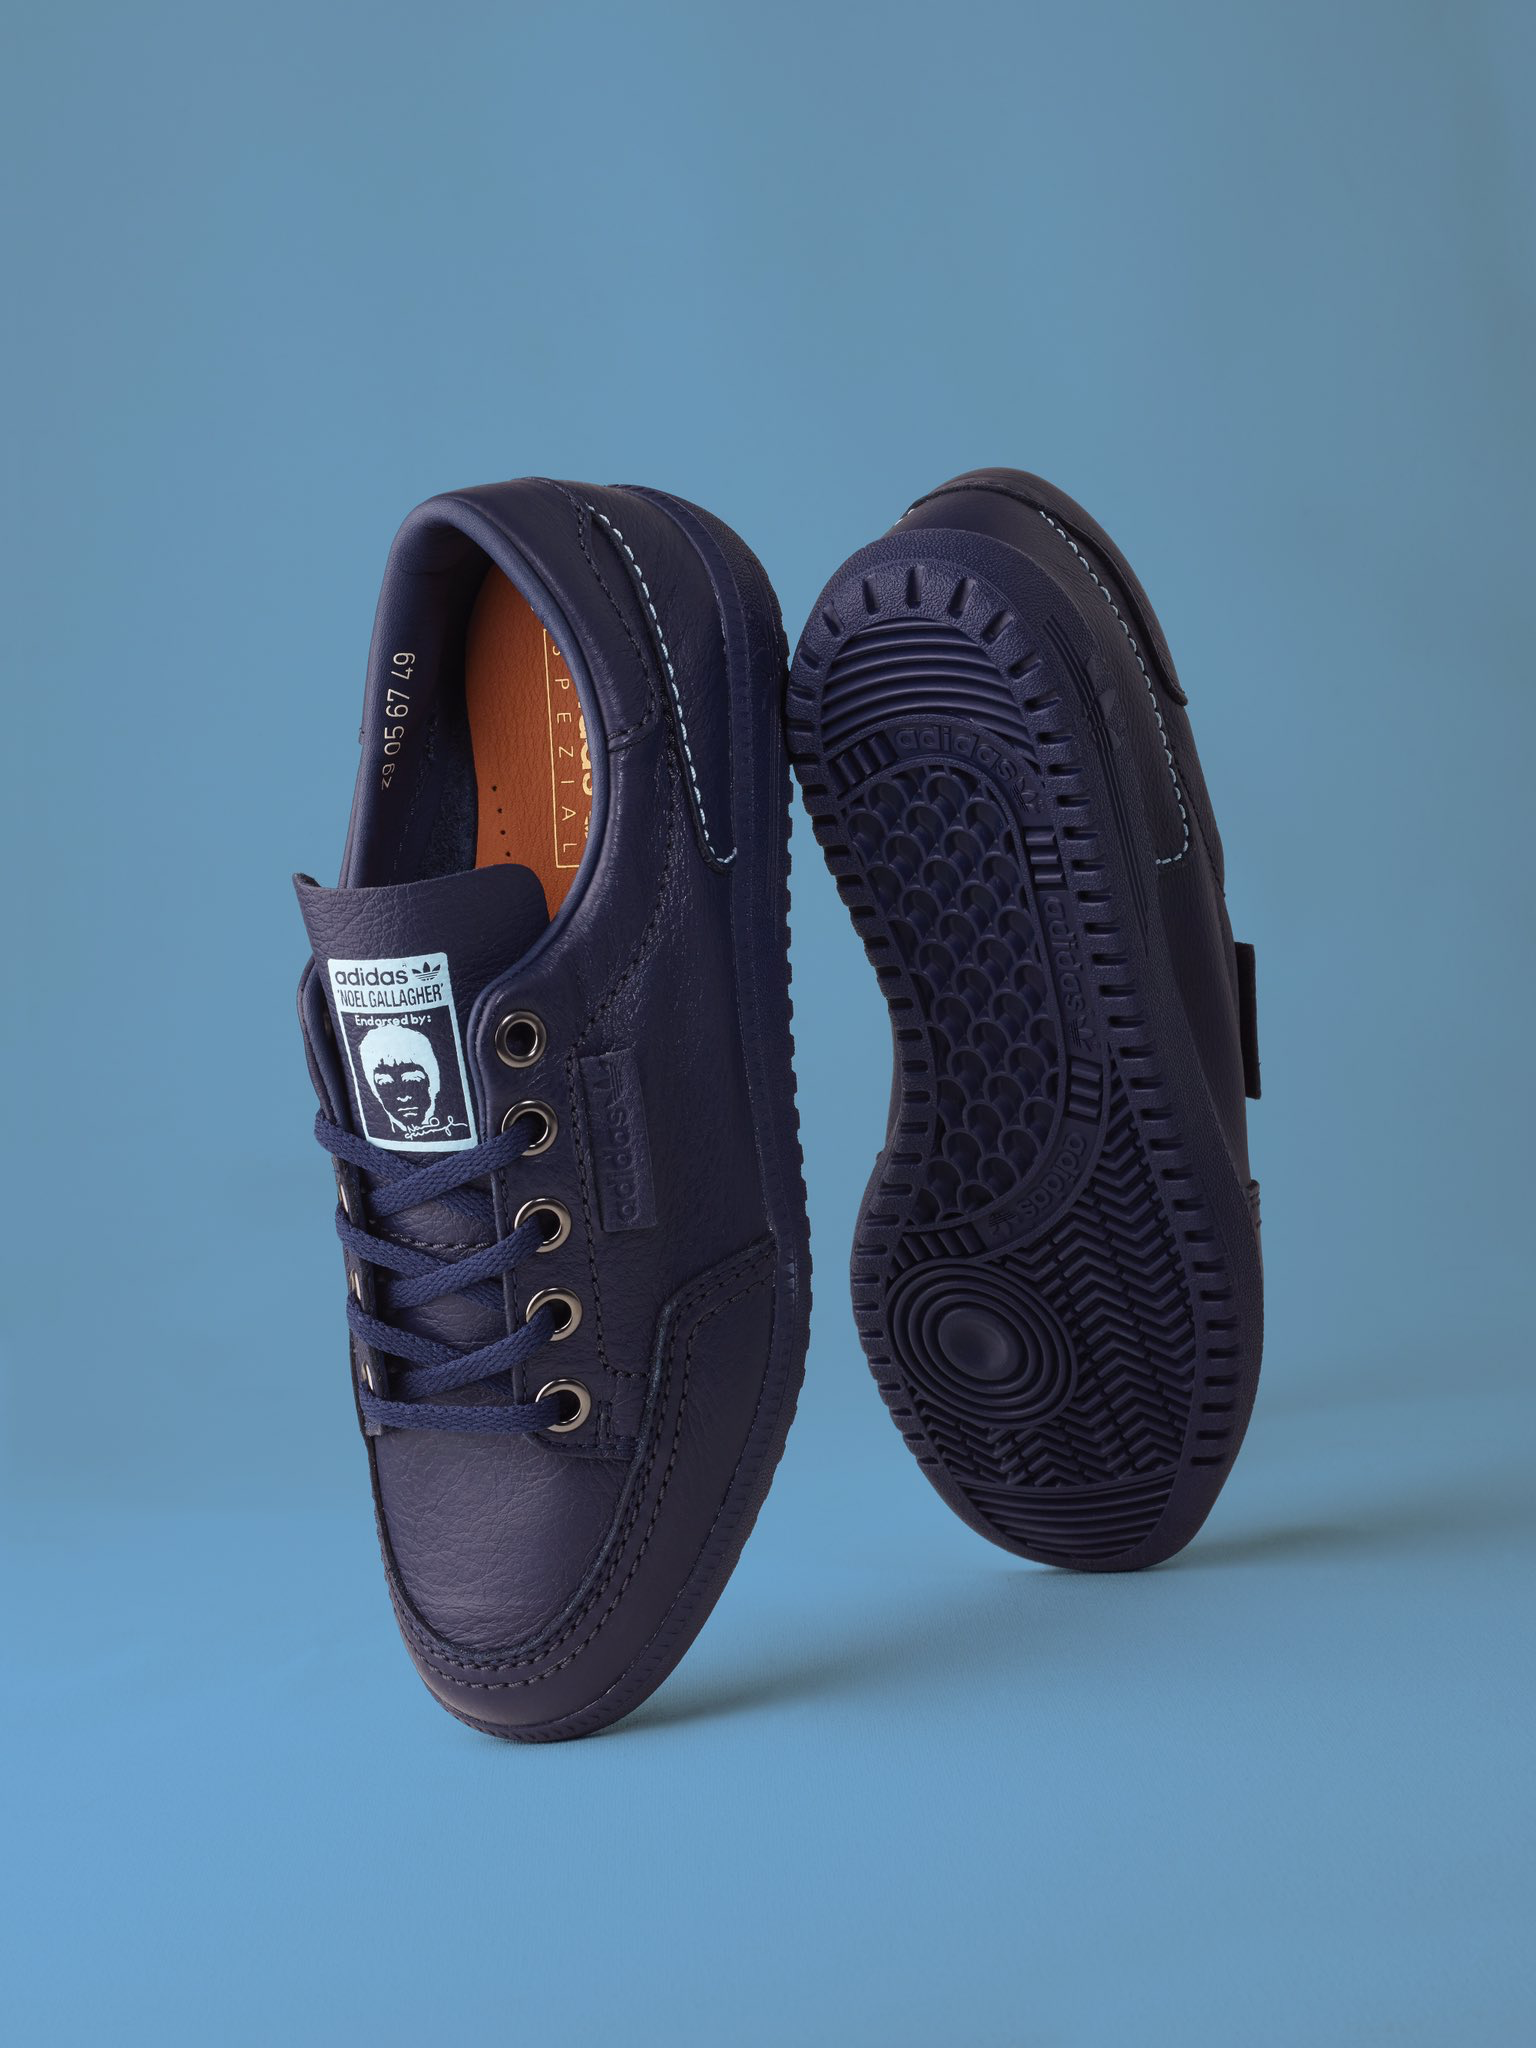 hot sales dbfc3 3eda2 adidas Spezial SS17. A limited edition run out today online and at select  retailers.